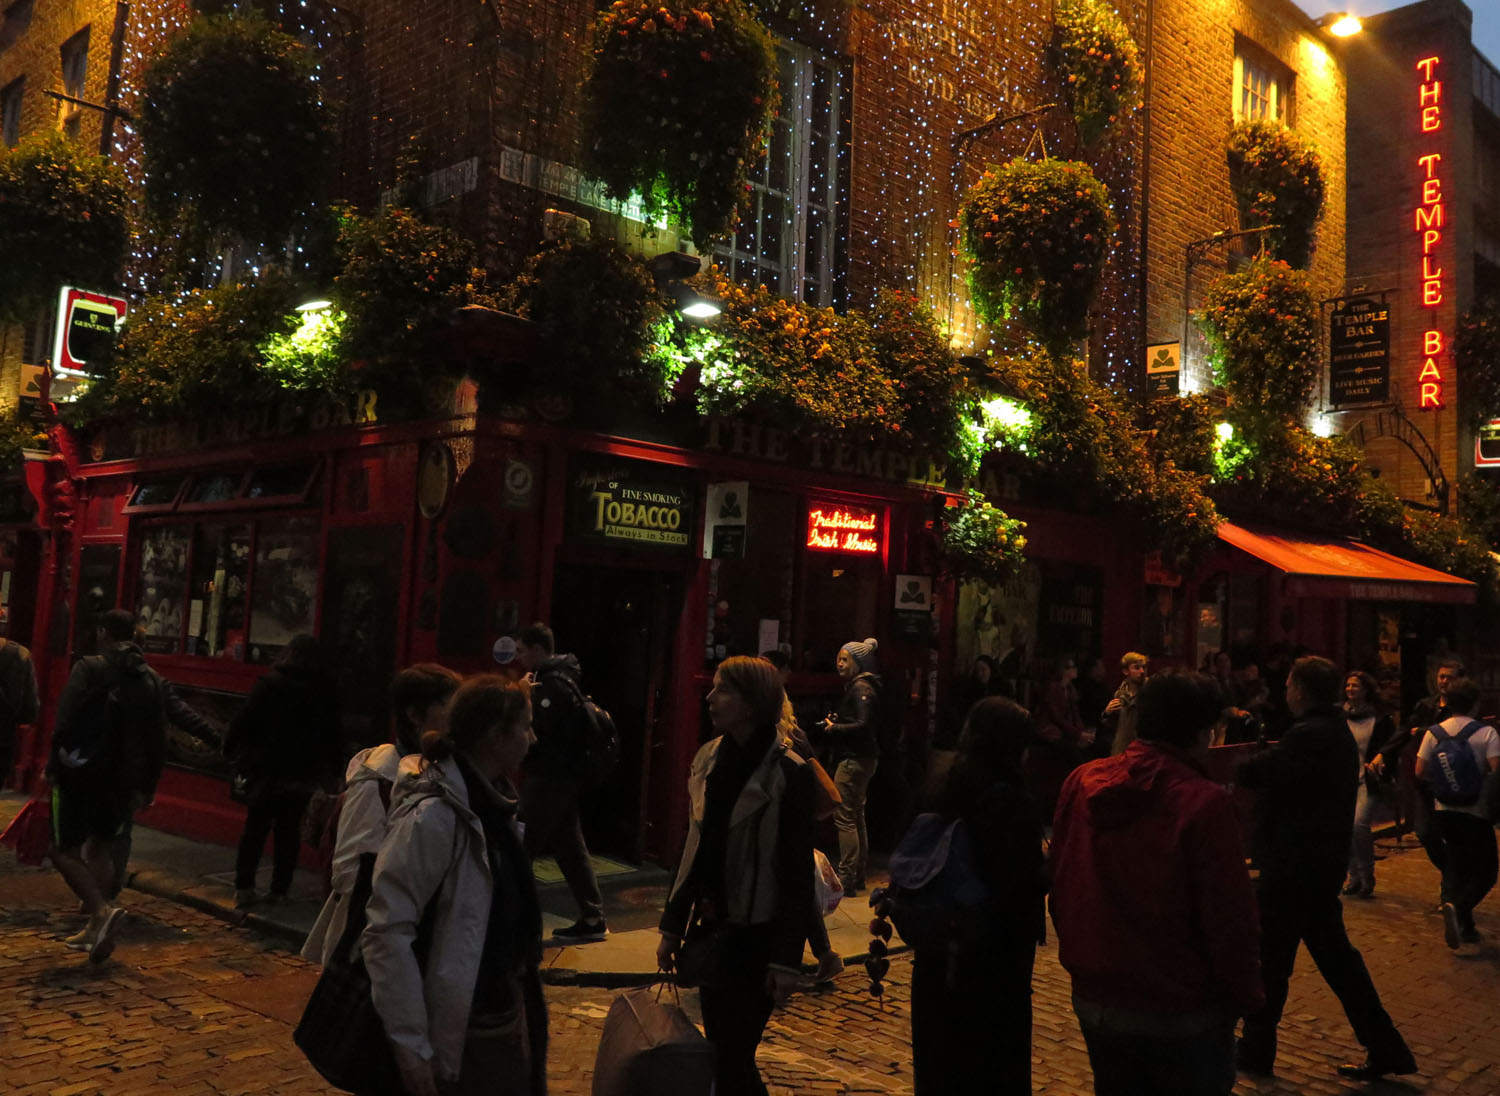 Ireland-Dublin-Temple-Bar